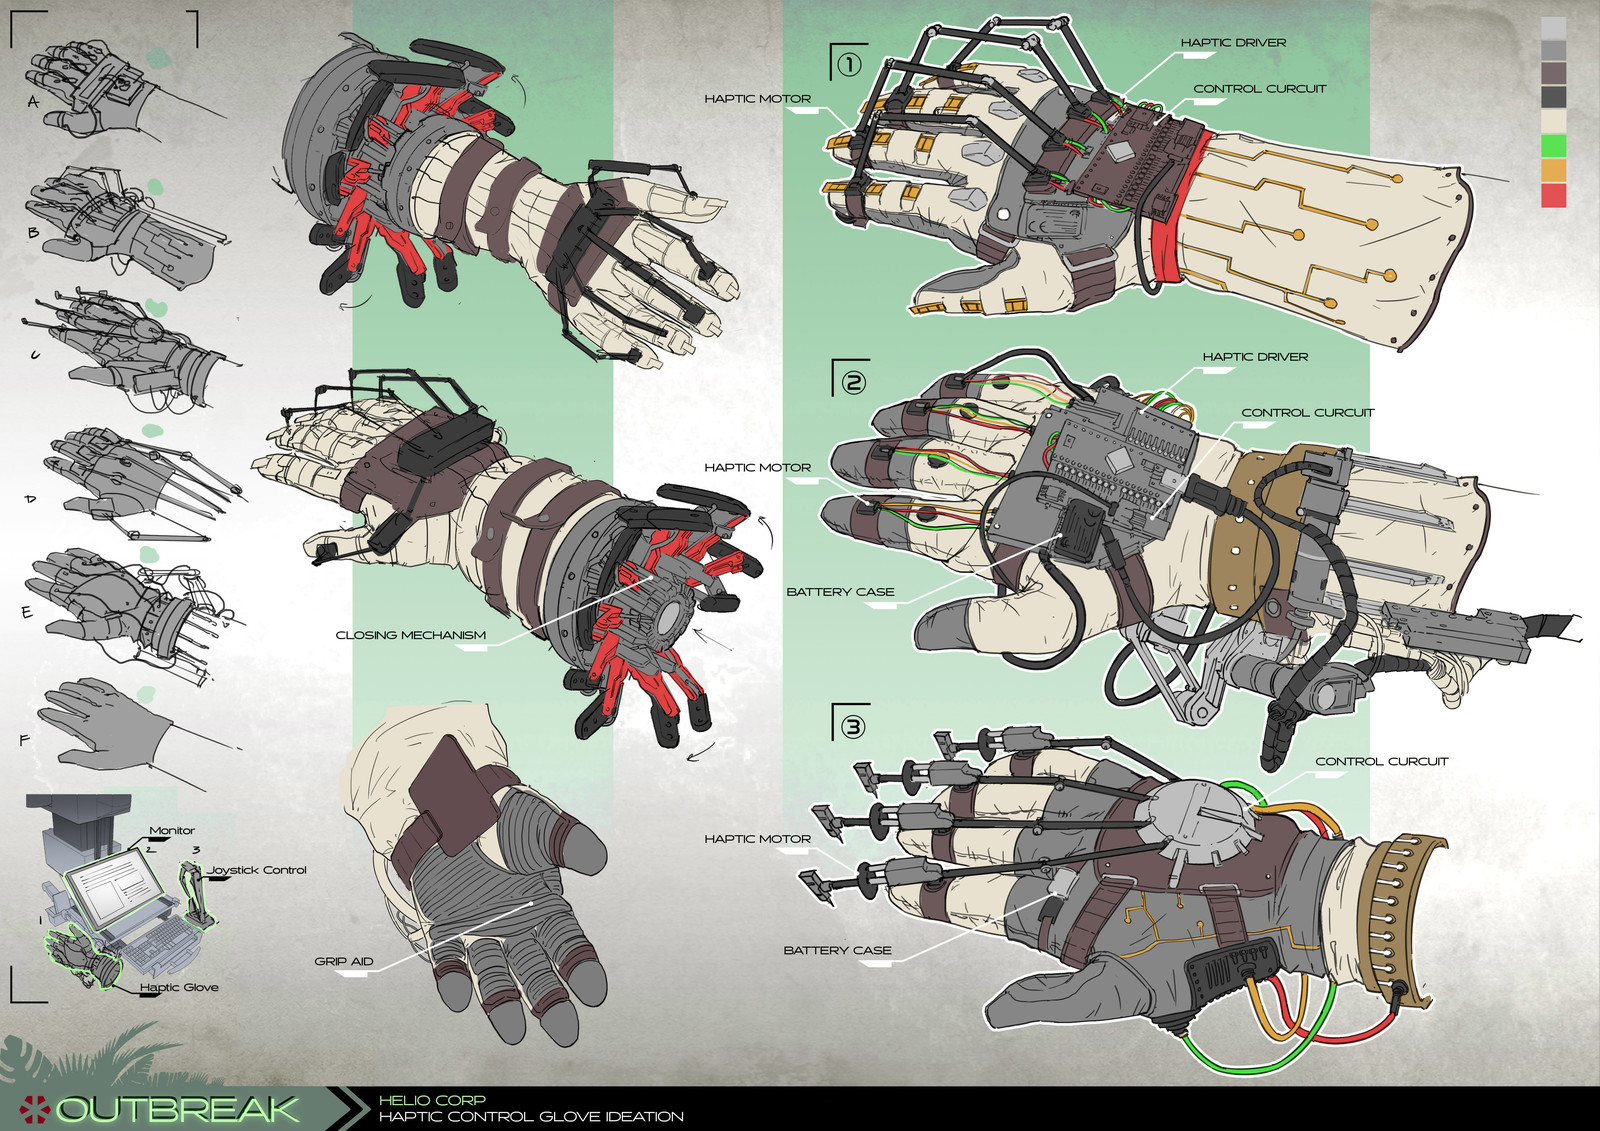 Project Outbreak - Haptic Control Glove